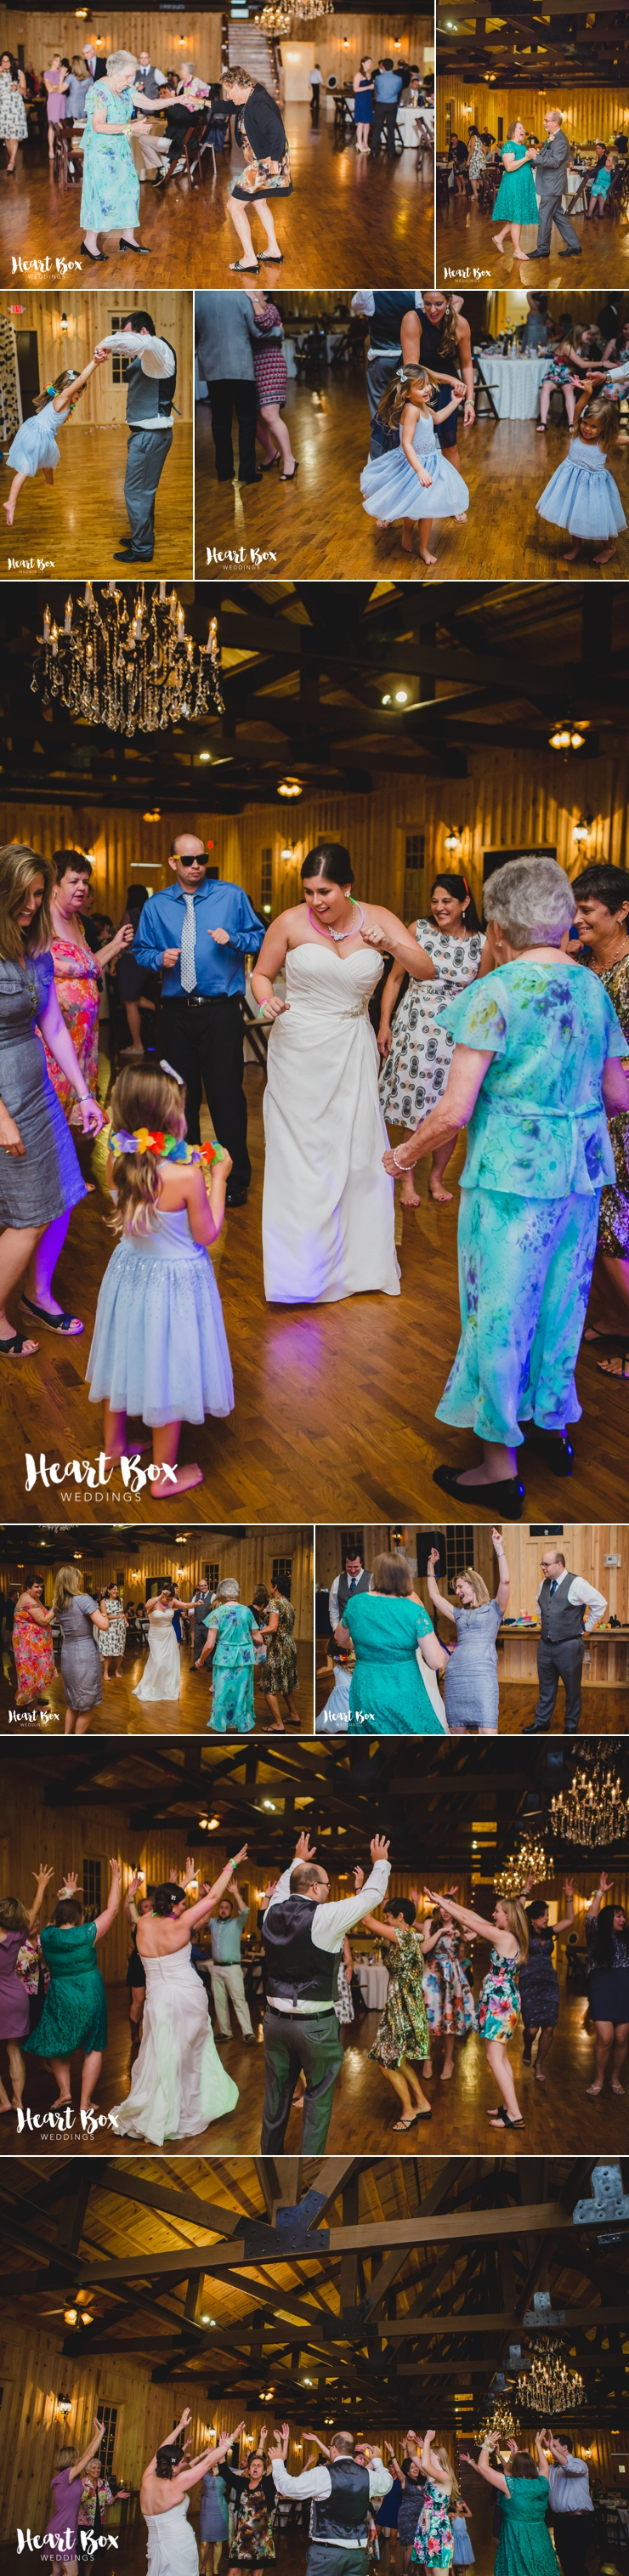 Waggoner Wedding Collages 18.jpg